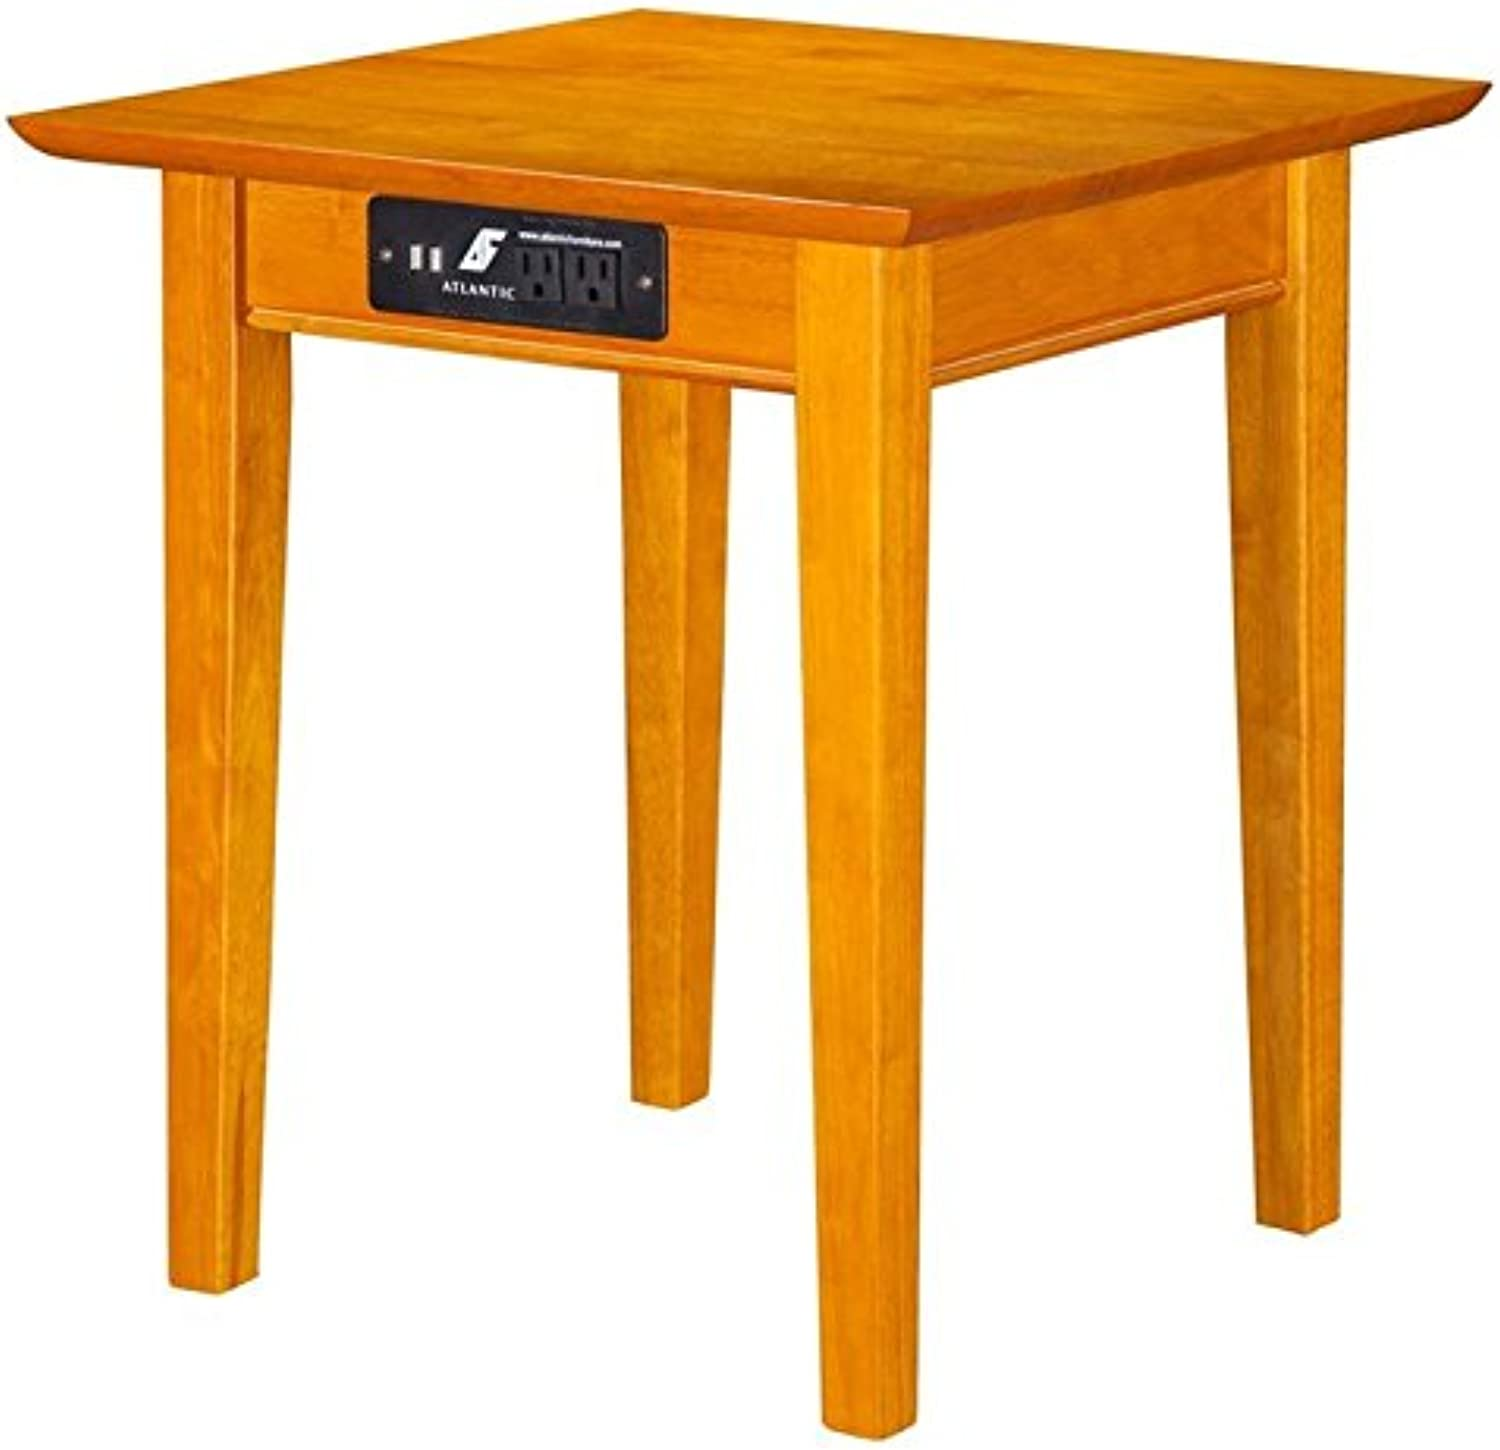 Leo & Lacey Charger End Table in Caramel Latte